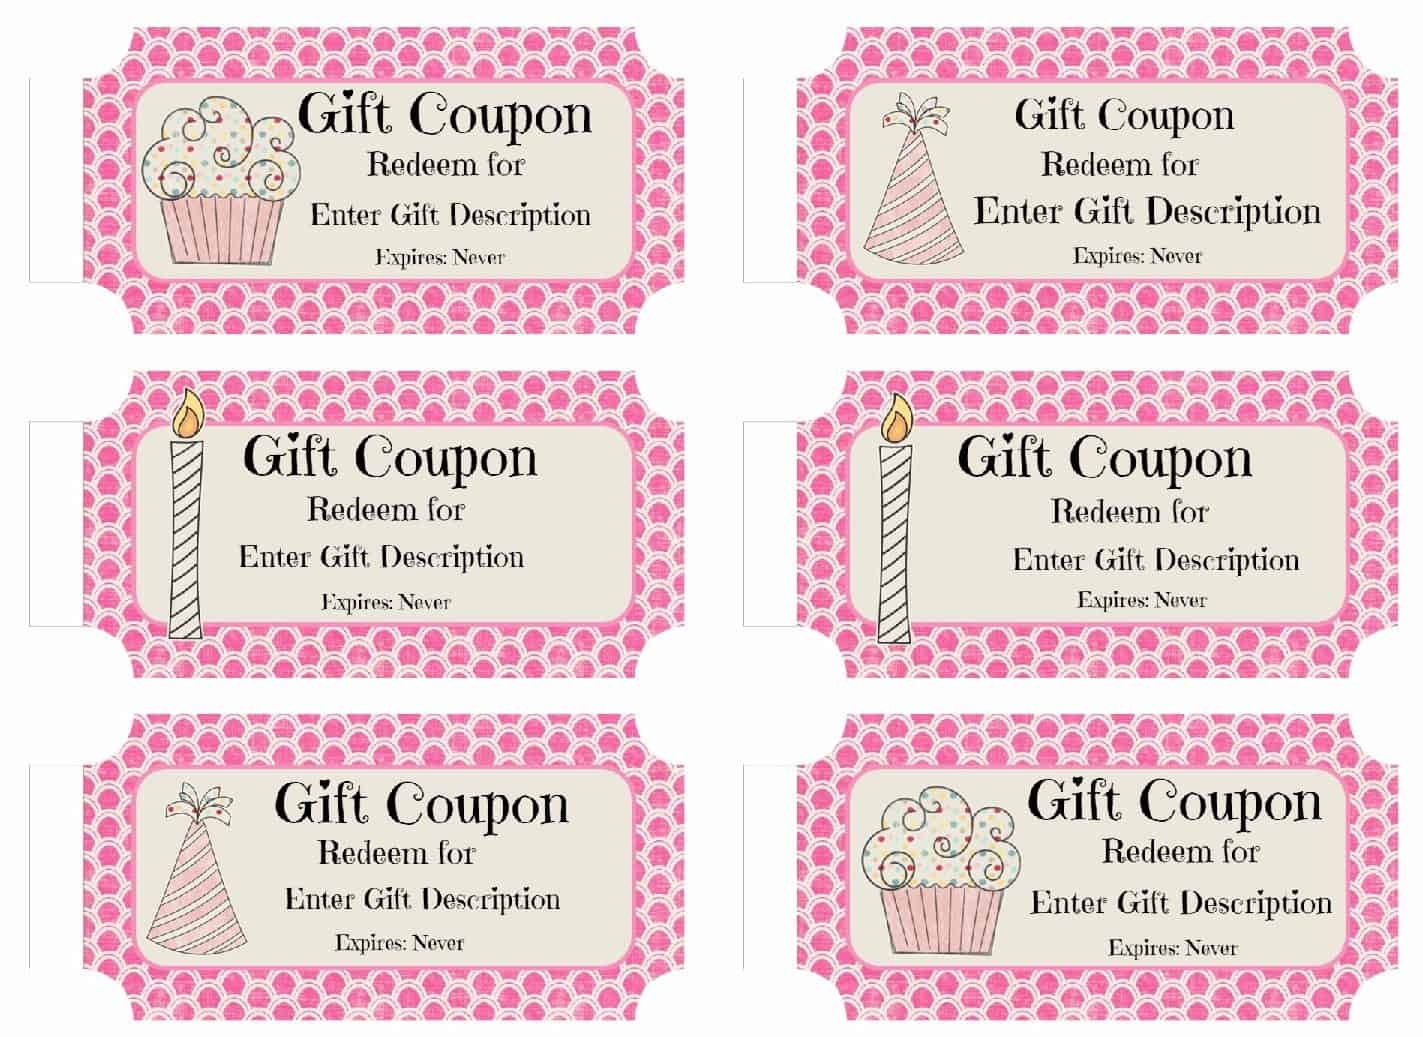 Discount photo gifts coupon